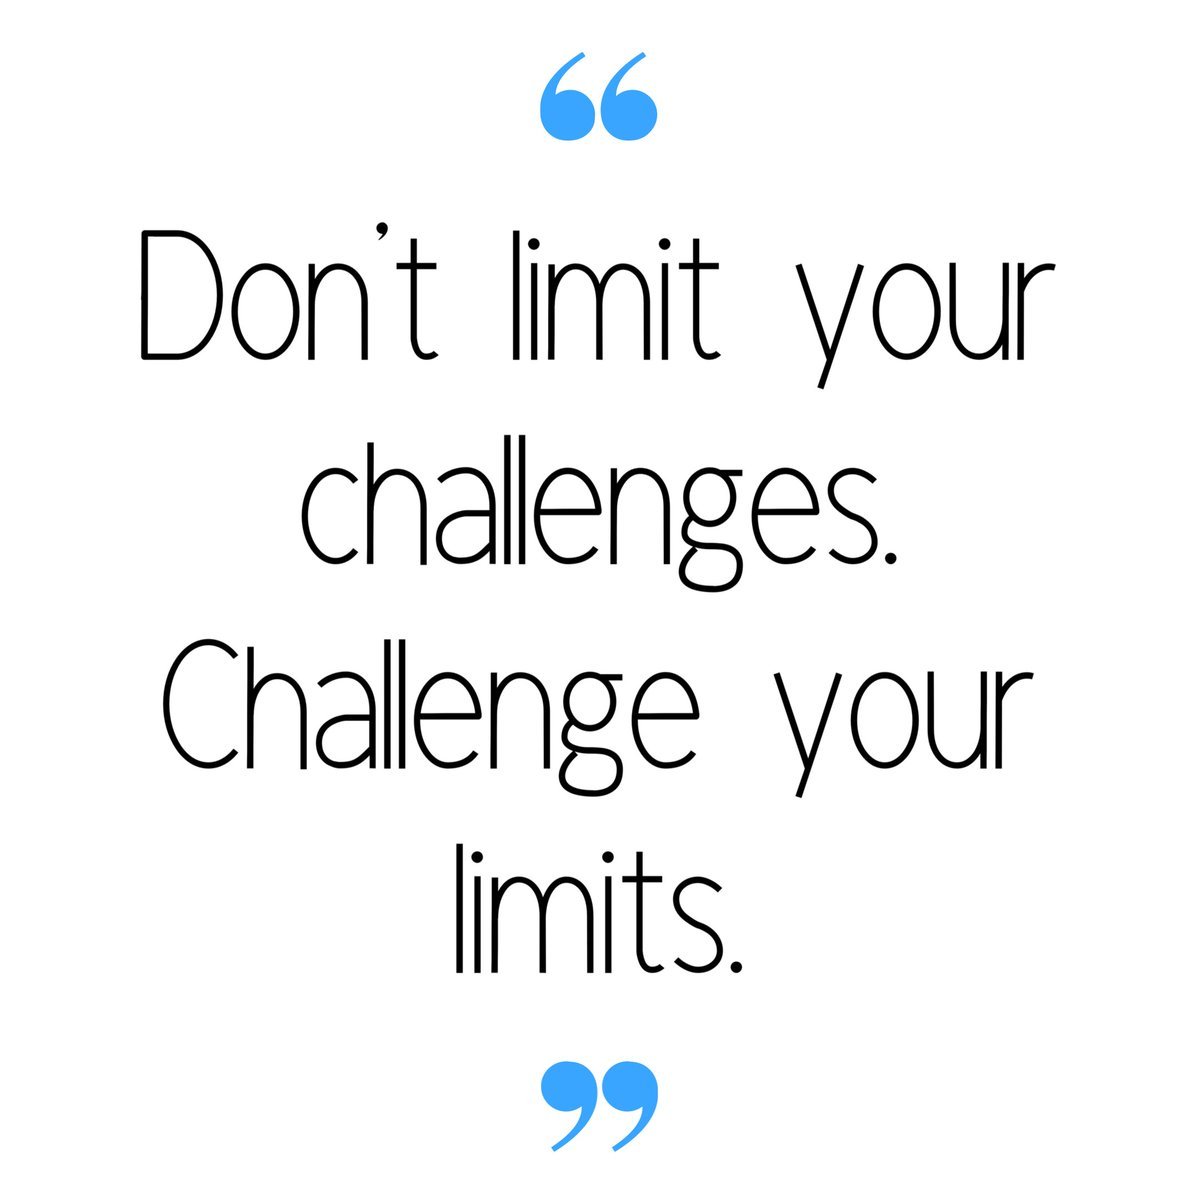 Monday motivation!    Challenge yourself this week to try something new!! #niagaracollege #employment #mondaymotivation #motivationalquotes #jobsearchpic.twitter.com/pOfD0xGOUT